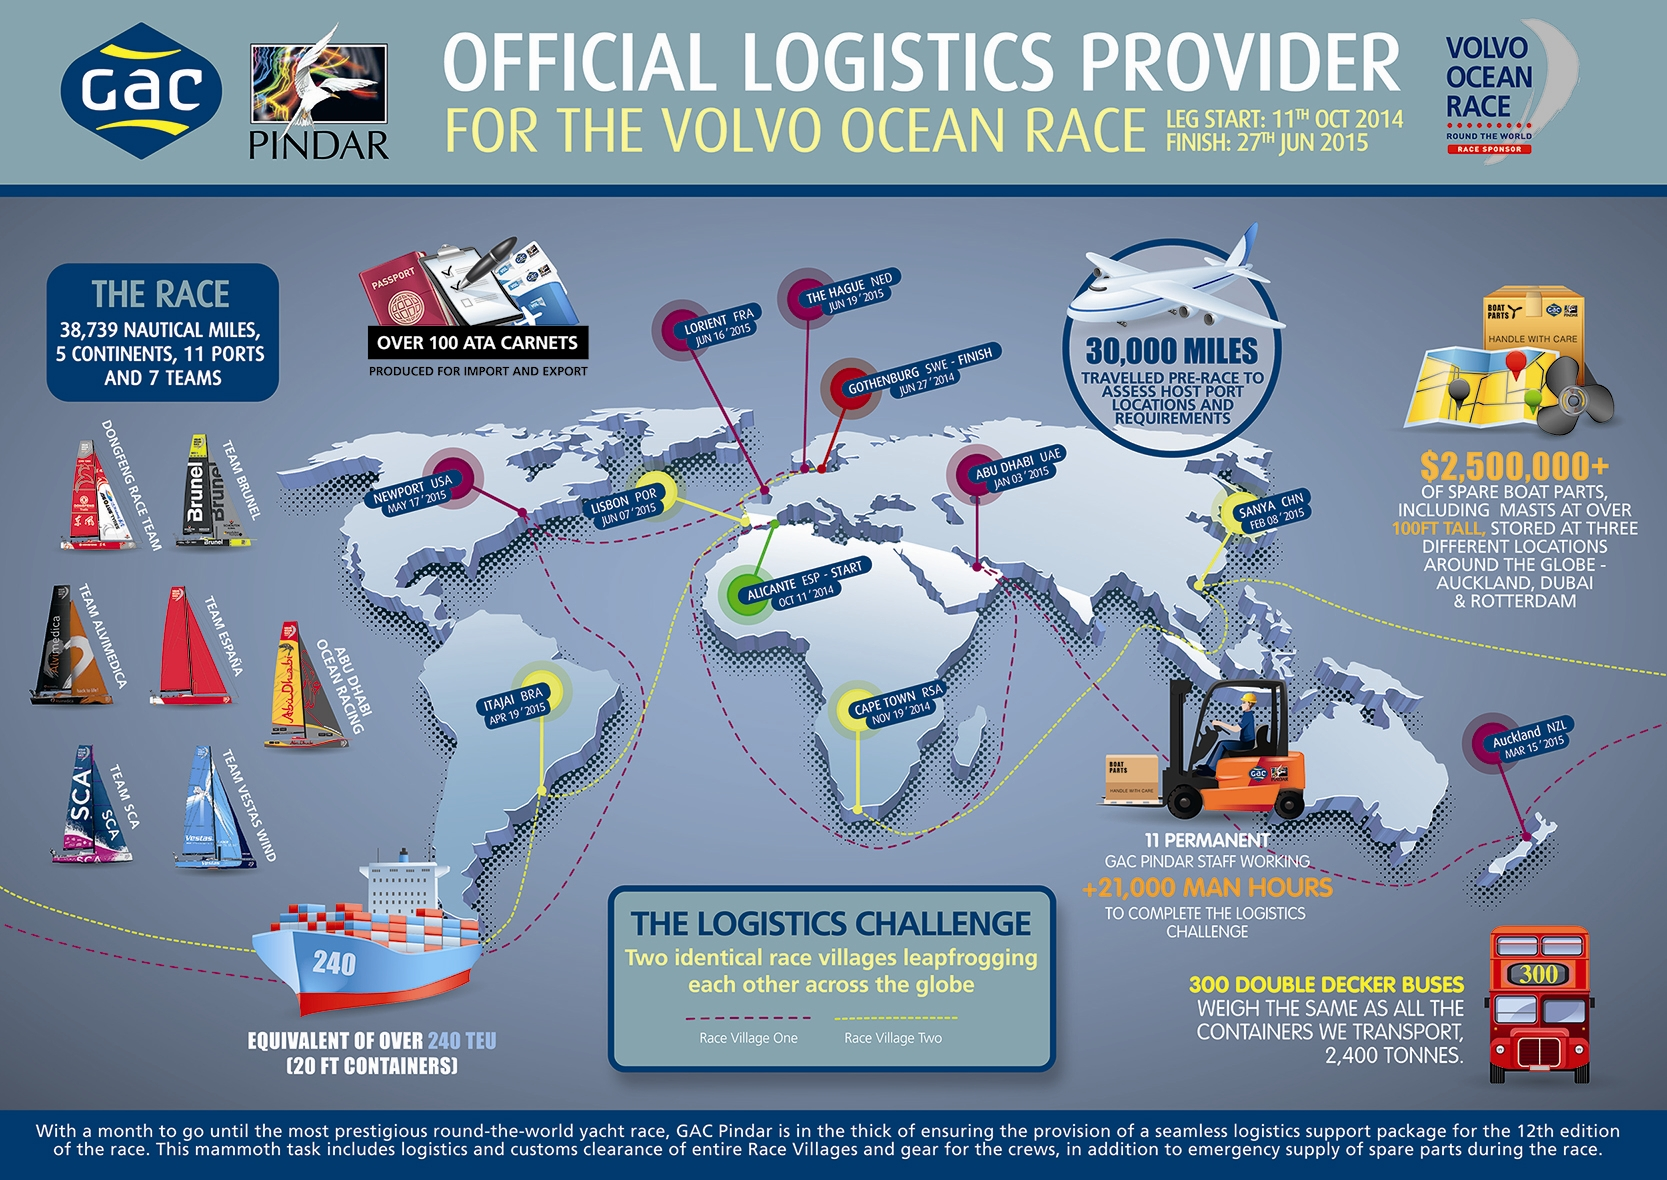 GAC Pindar Volvo Ocean Race Logistics Challenge Infographic - 11 September 2014 - Adventure 52